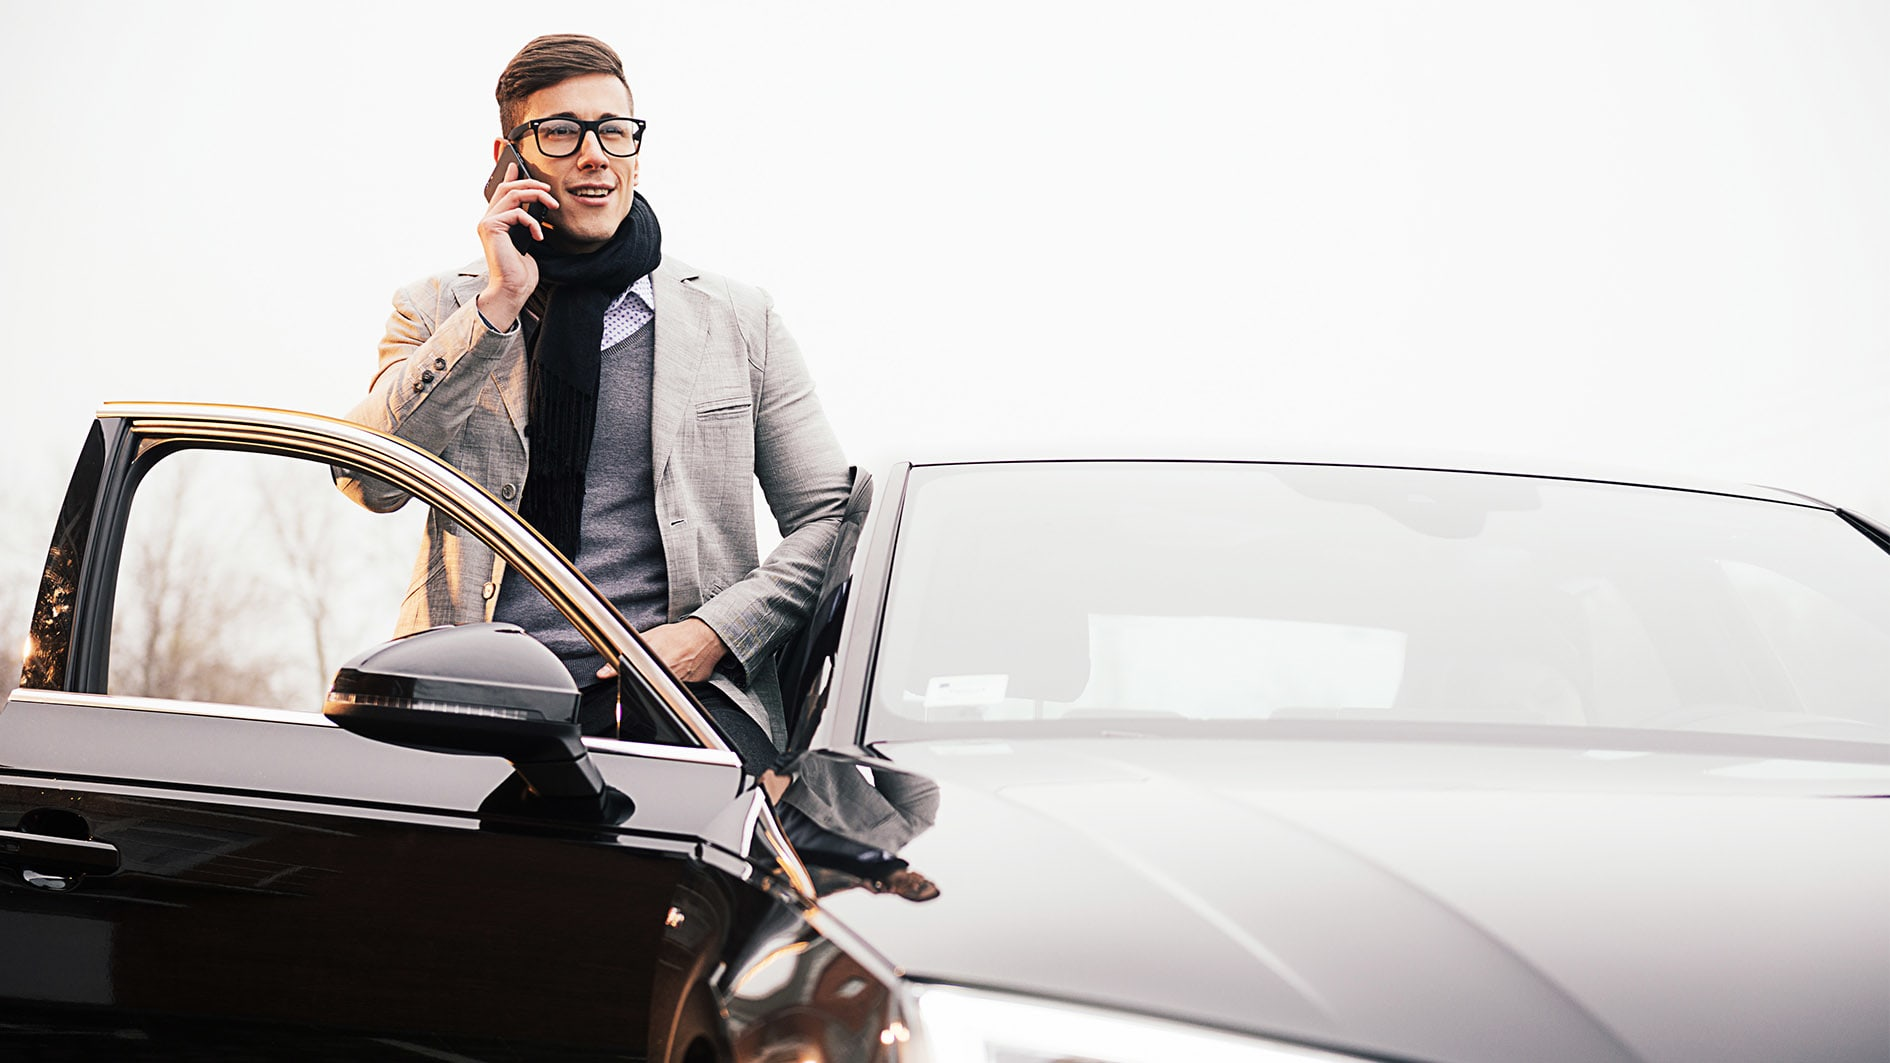 Owners Of High Status Cars More Likely To Be Self Centred Men Study Finds Caradvice